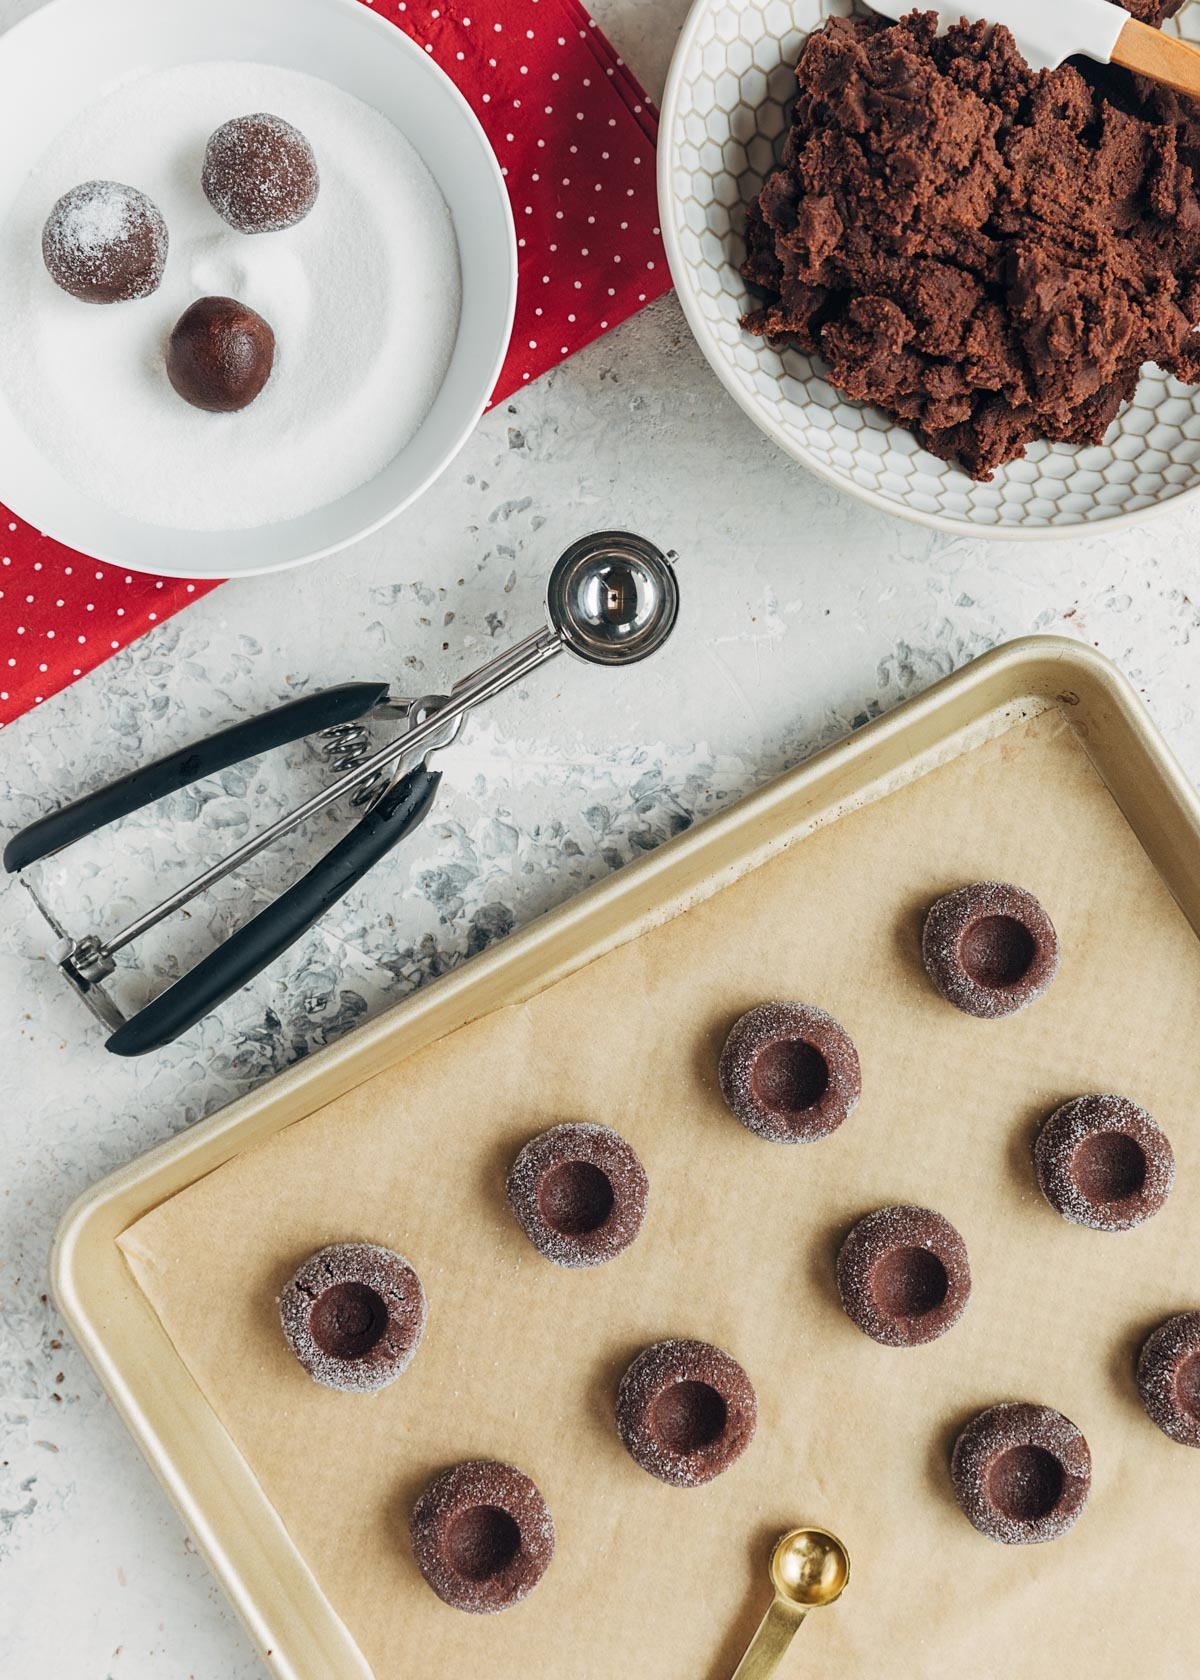 chocolate thumbprint cookie dough scooped onto a baking sheet